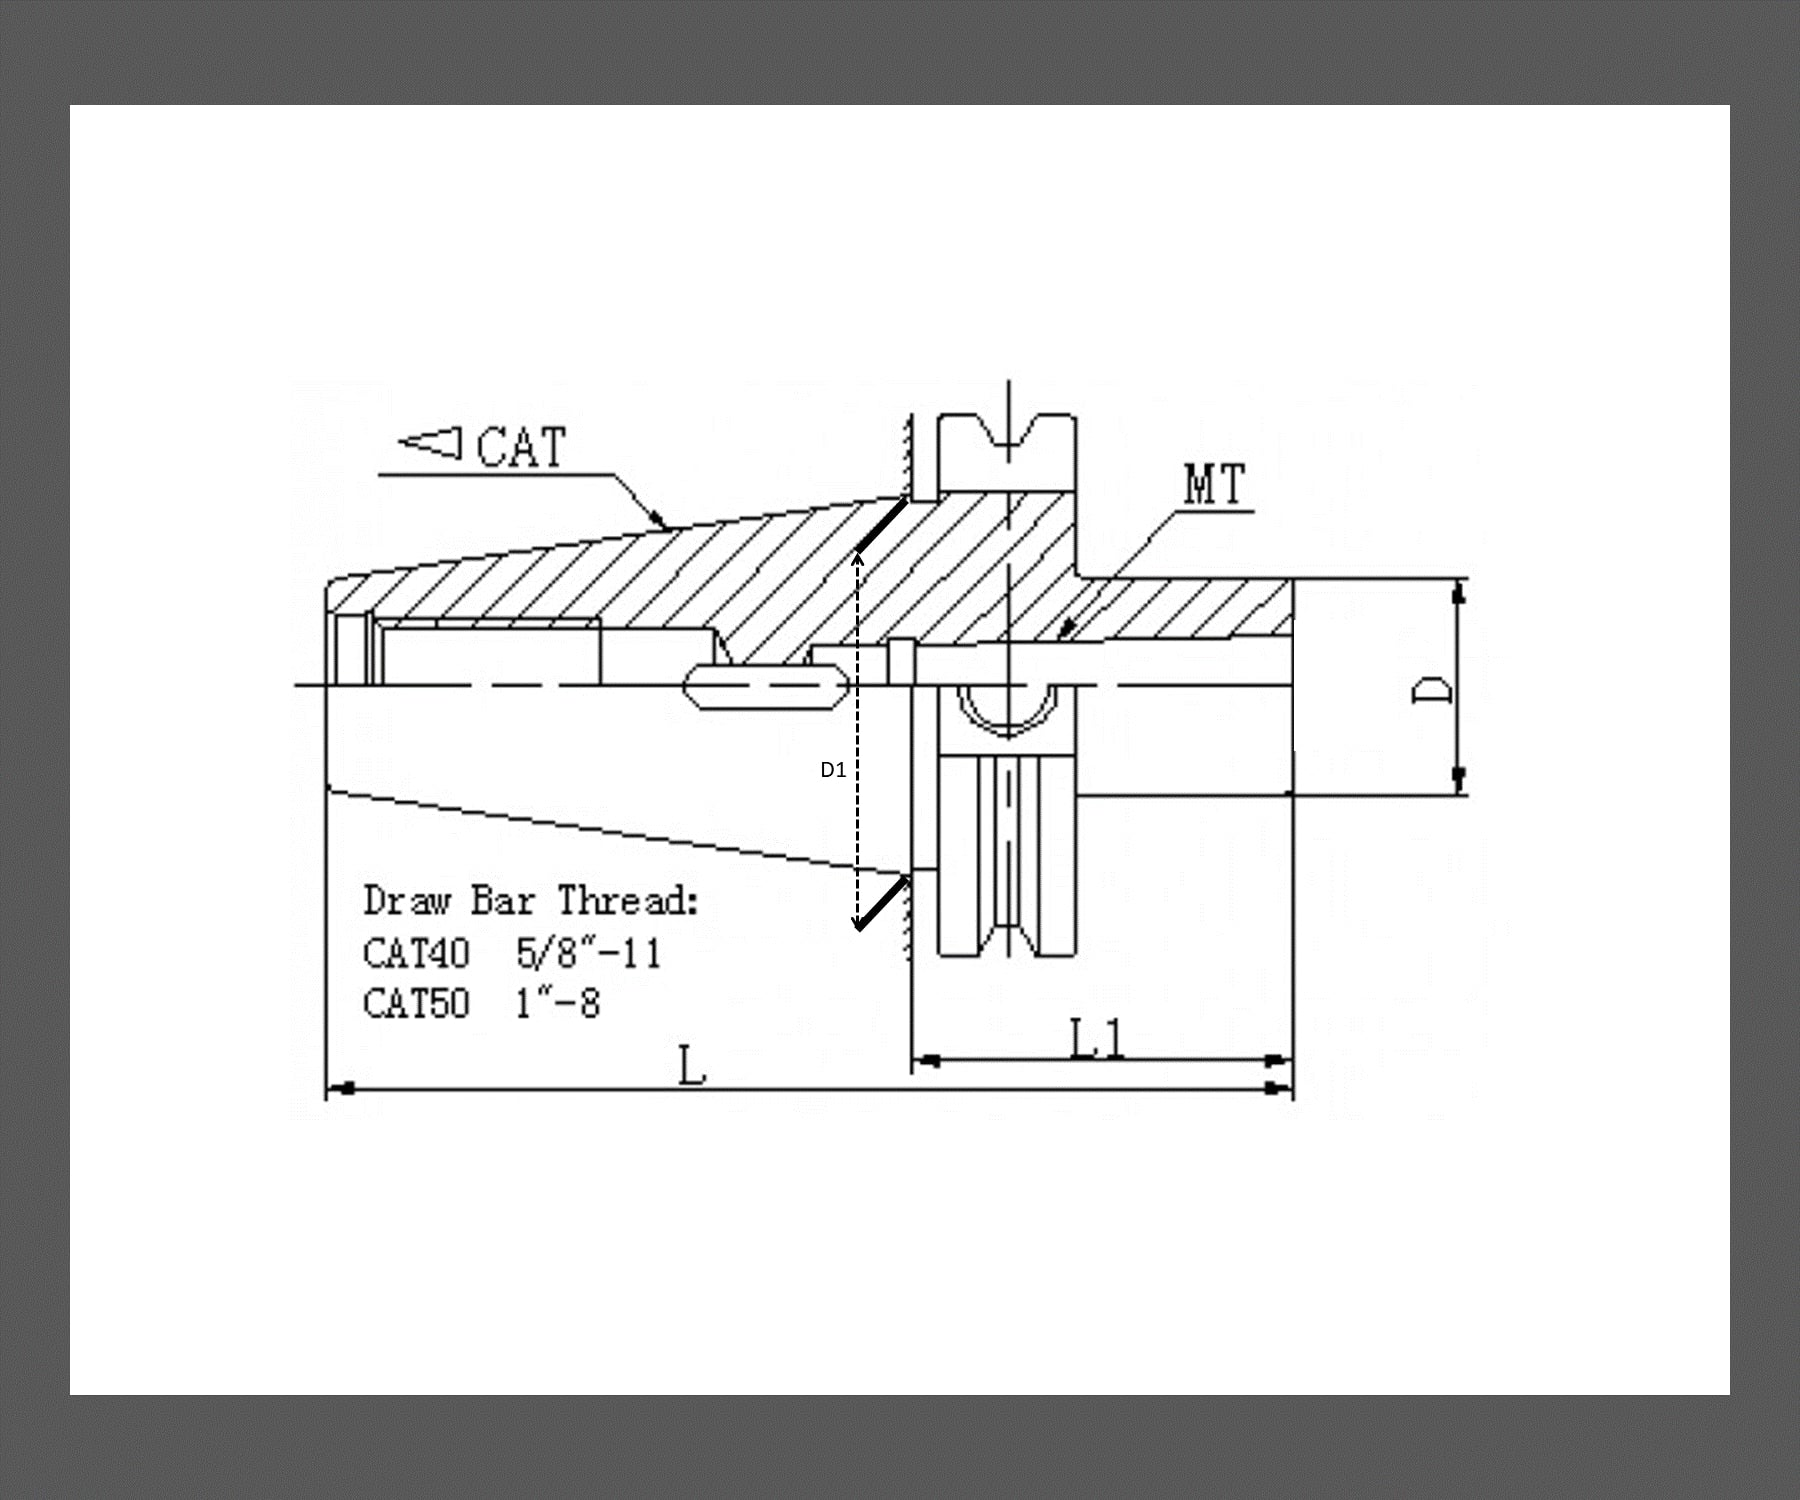 CATERPILLAR V-FLANGE TO MORSE TAPER ADAPTOR SCHEMA